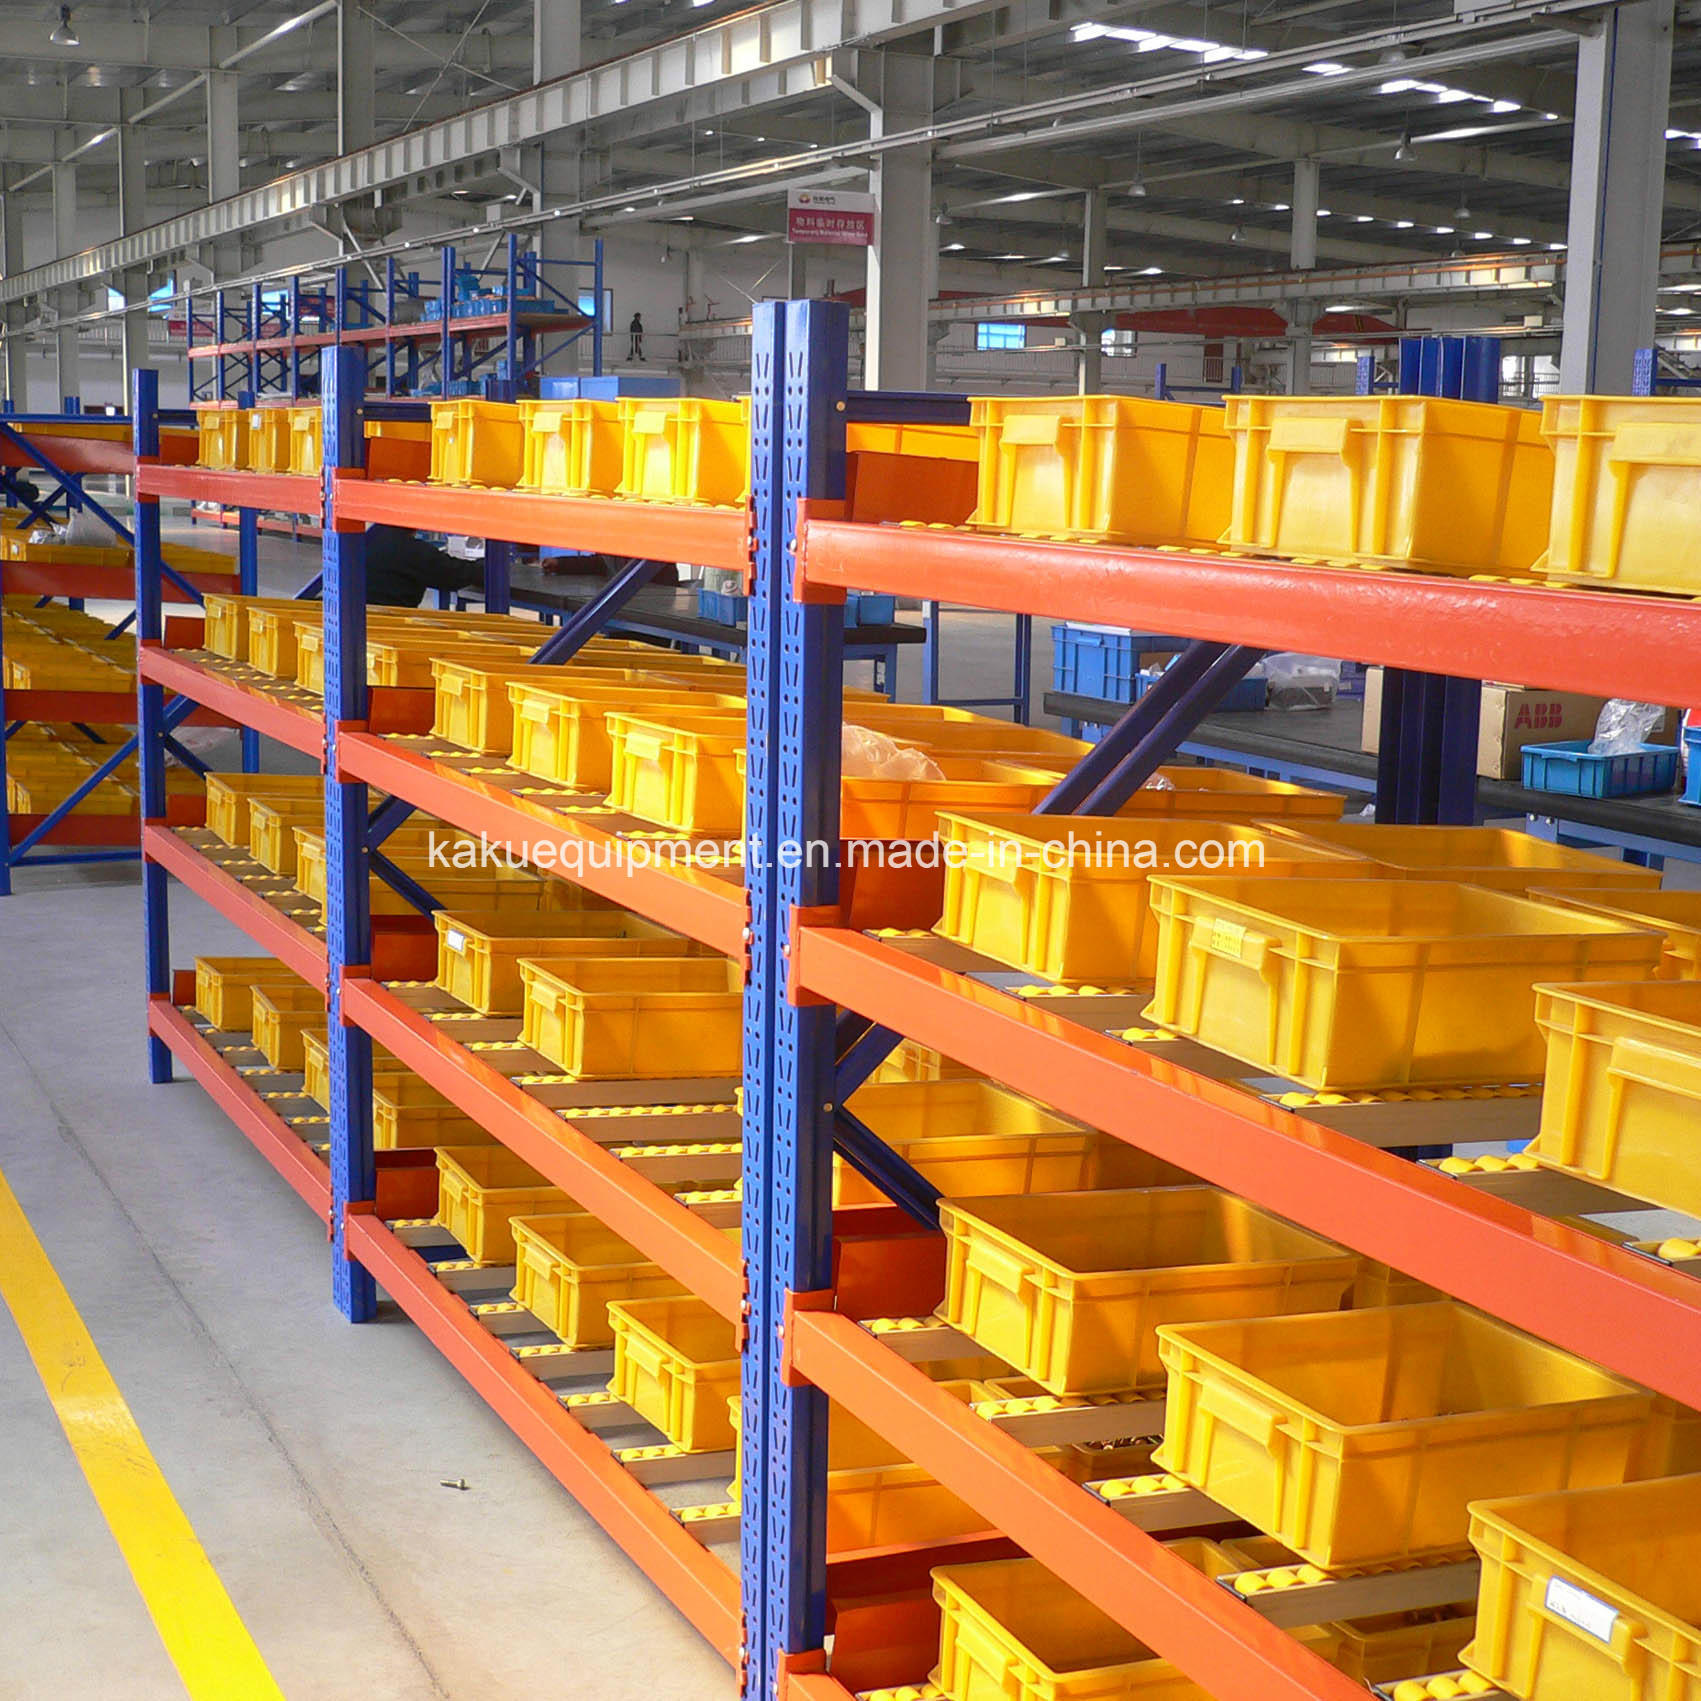 Steel Storage Carton Flow Shelving for Warehouse Picking System pictures & photos